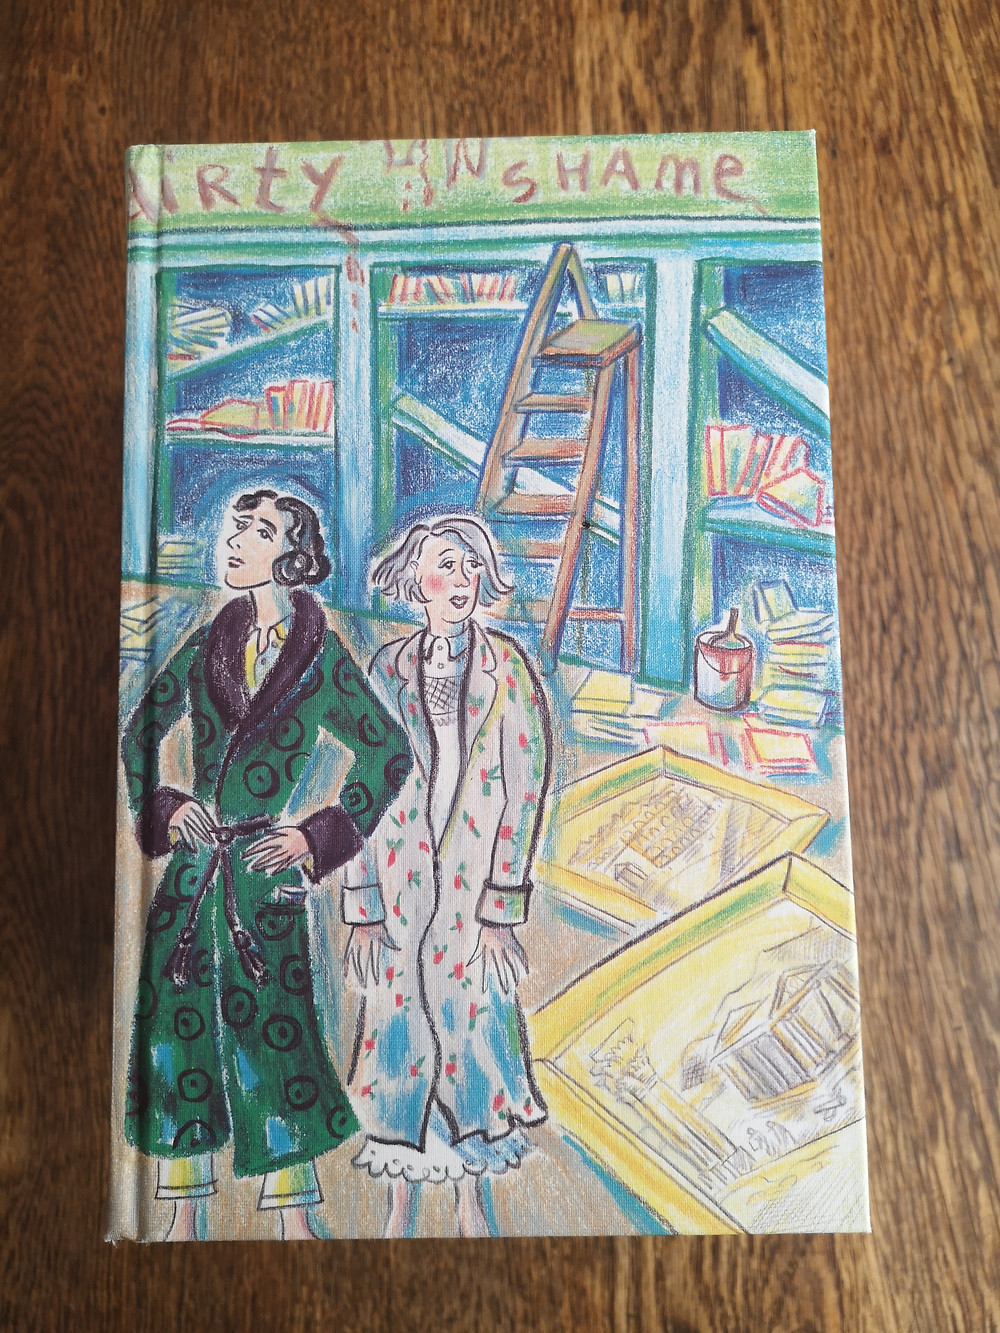 Colour illustrated book cover with two women with broken bookshelves in the background